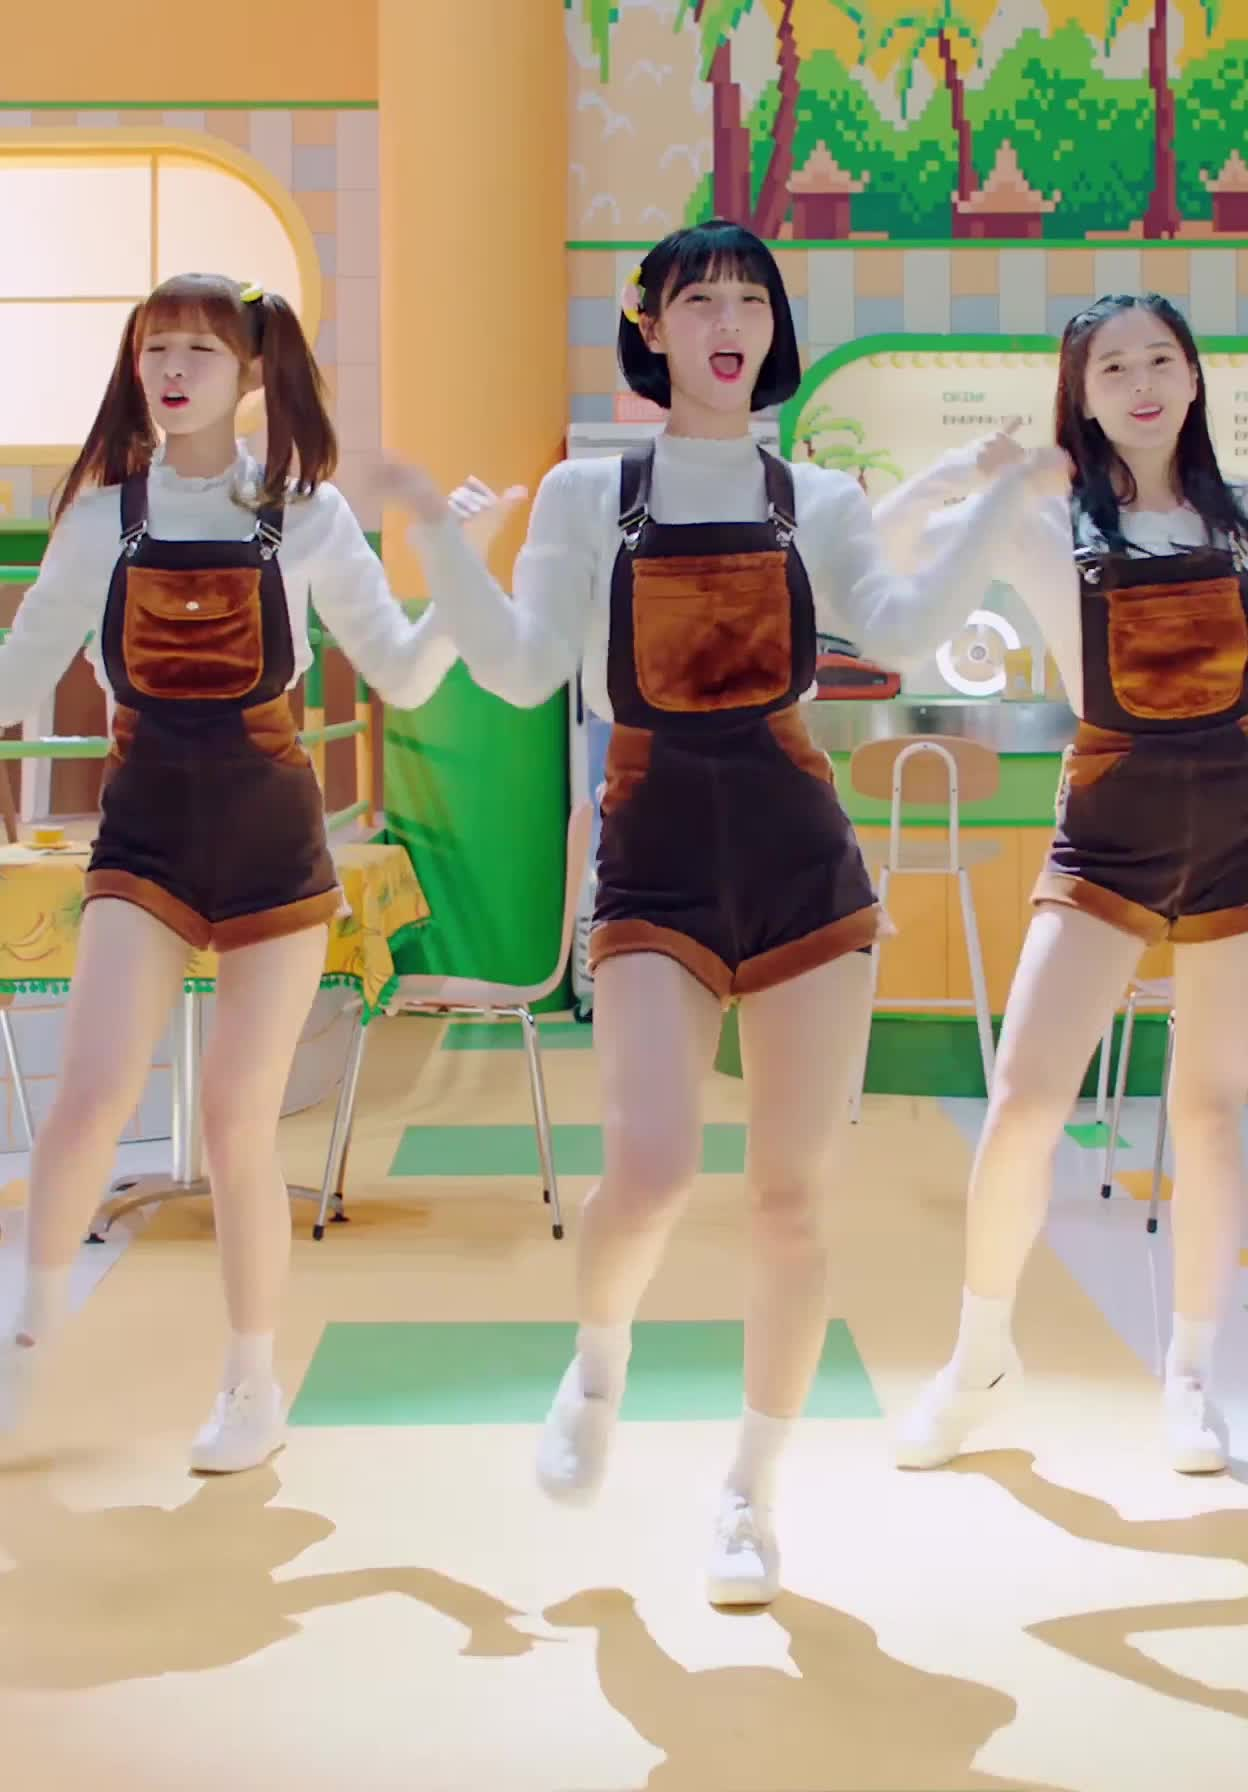 [MV] OH MY GIRL BANHANA(오마이걸 반하나) Banana allergy monkey 3 GIFs